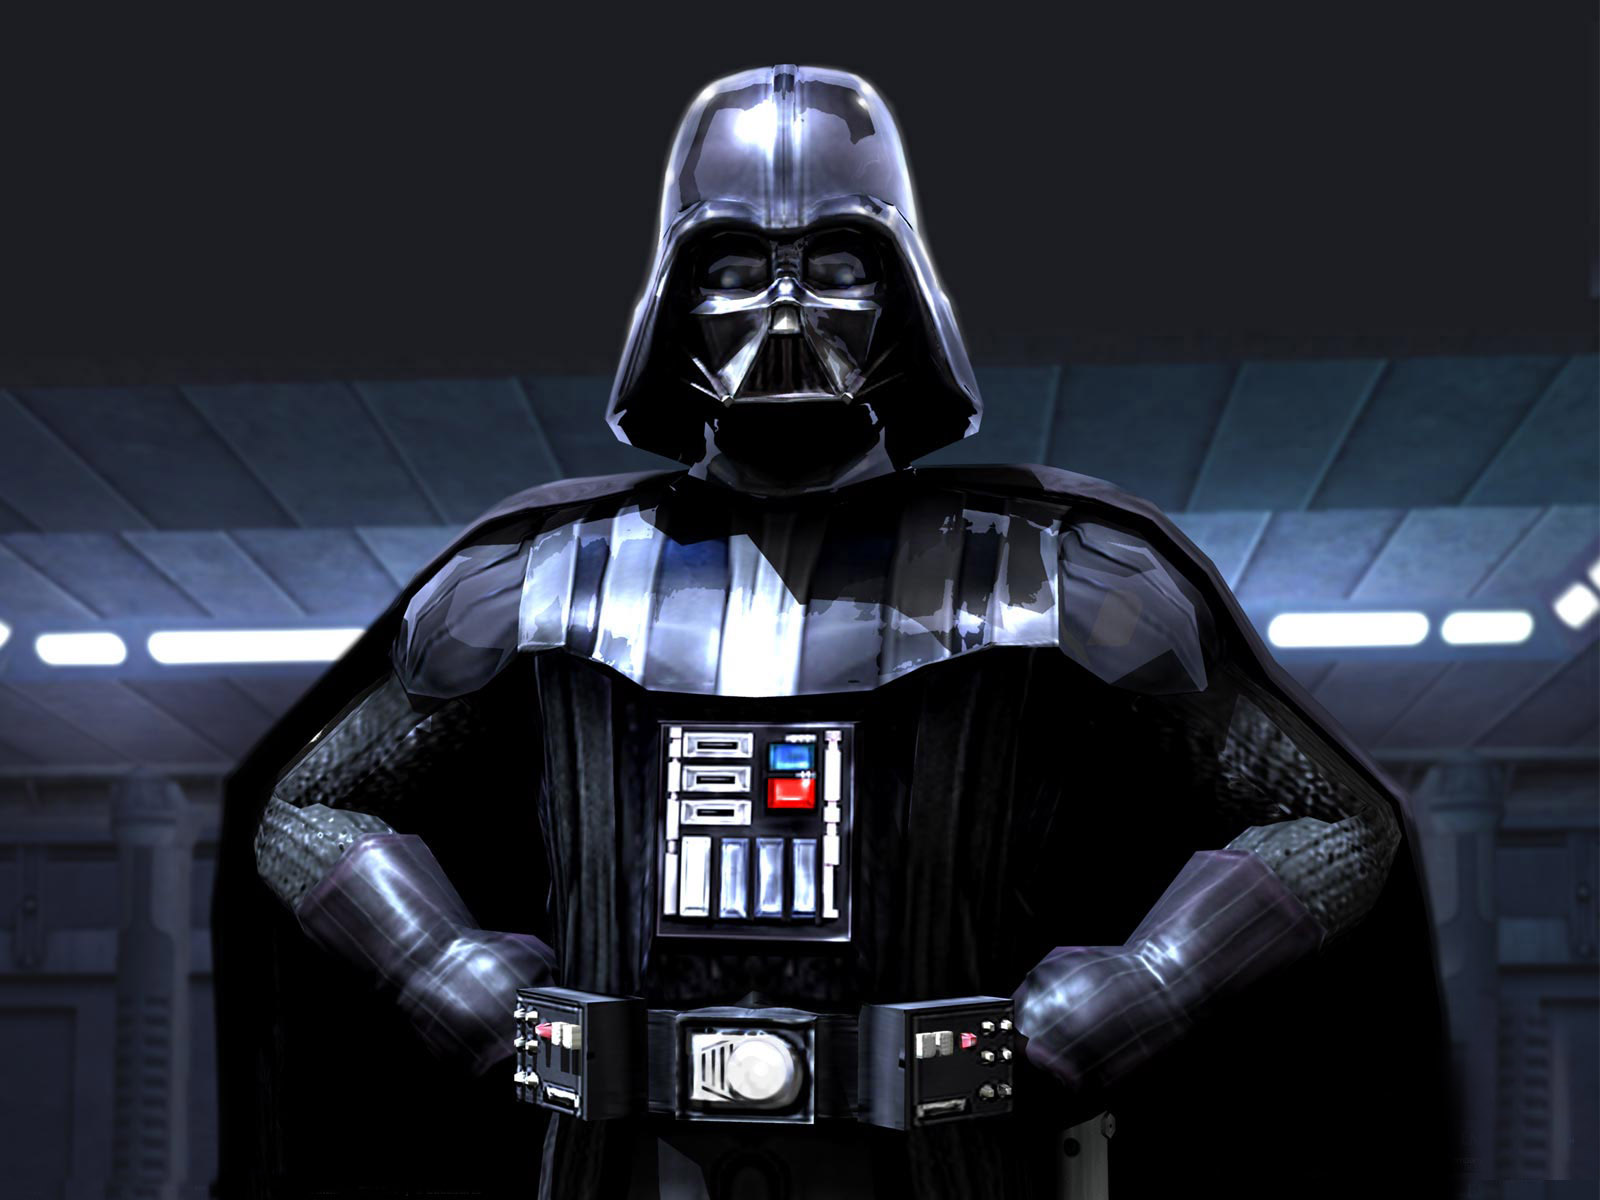 May The Force Be With You Star Wars Darth Vader 1054881 Hd